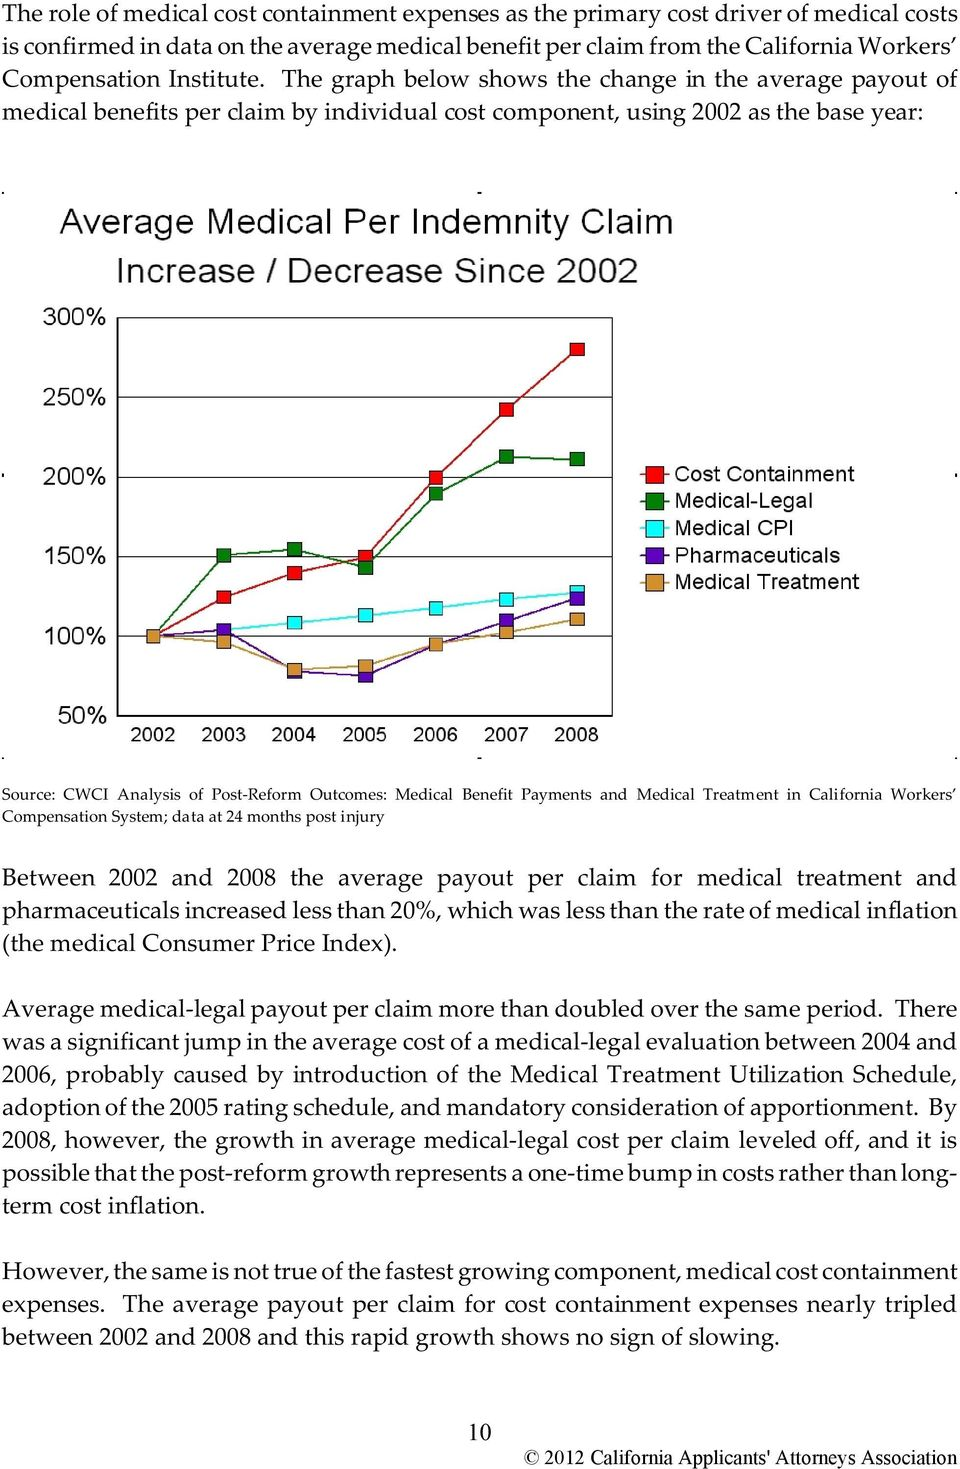 The graph below shows the change in the average payout of medical benefits per claim by individual cost component, using 2002 as the base year: Source: CWCI Analysis of Post-Reform Outcomes: Medical